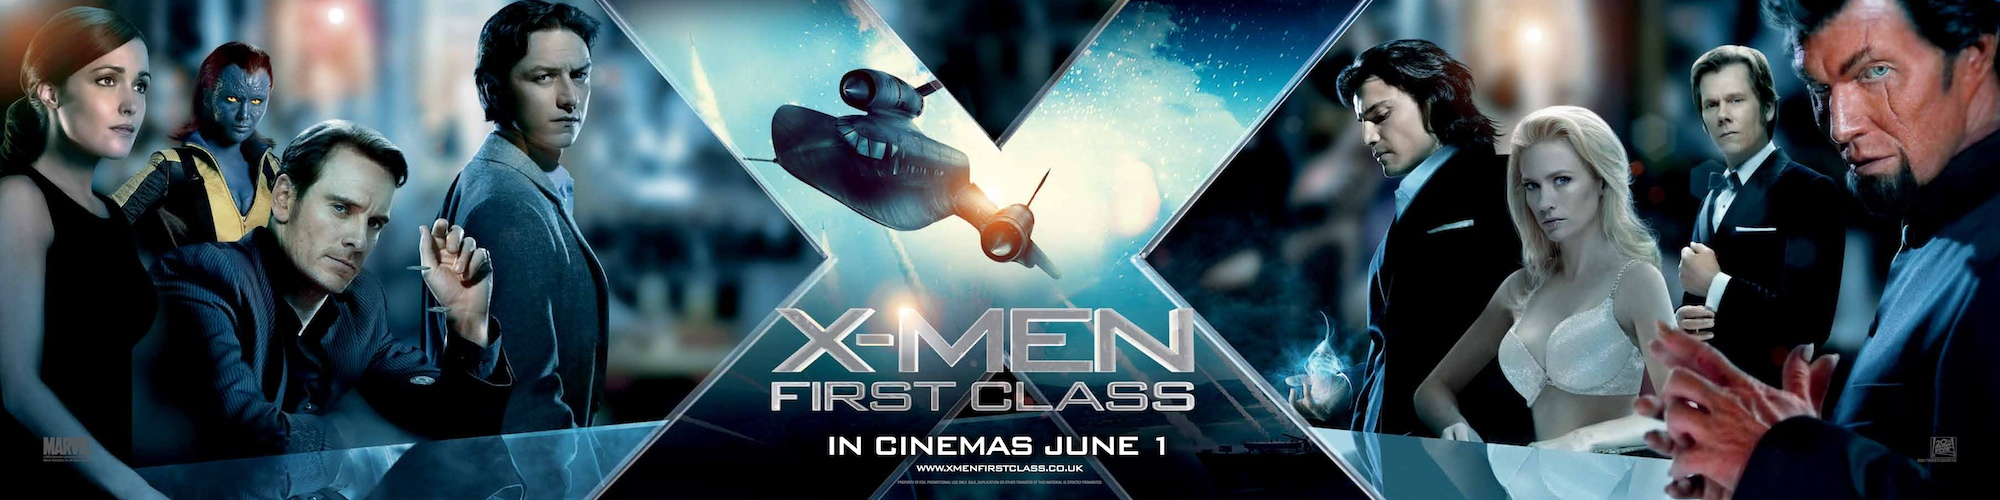 X-Men: First Class is released